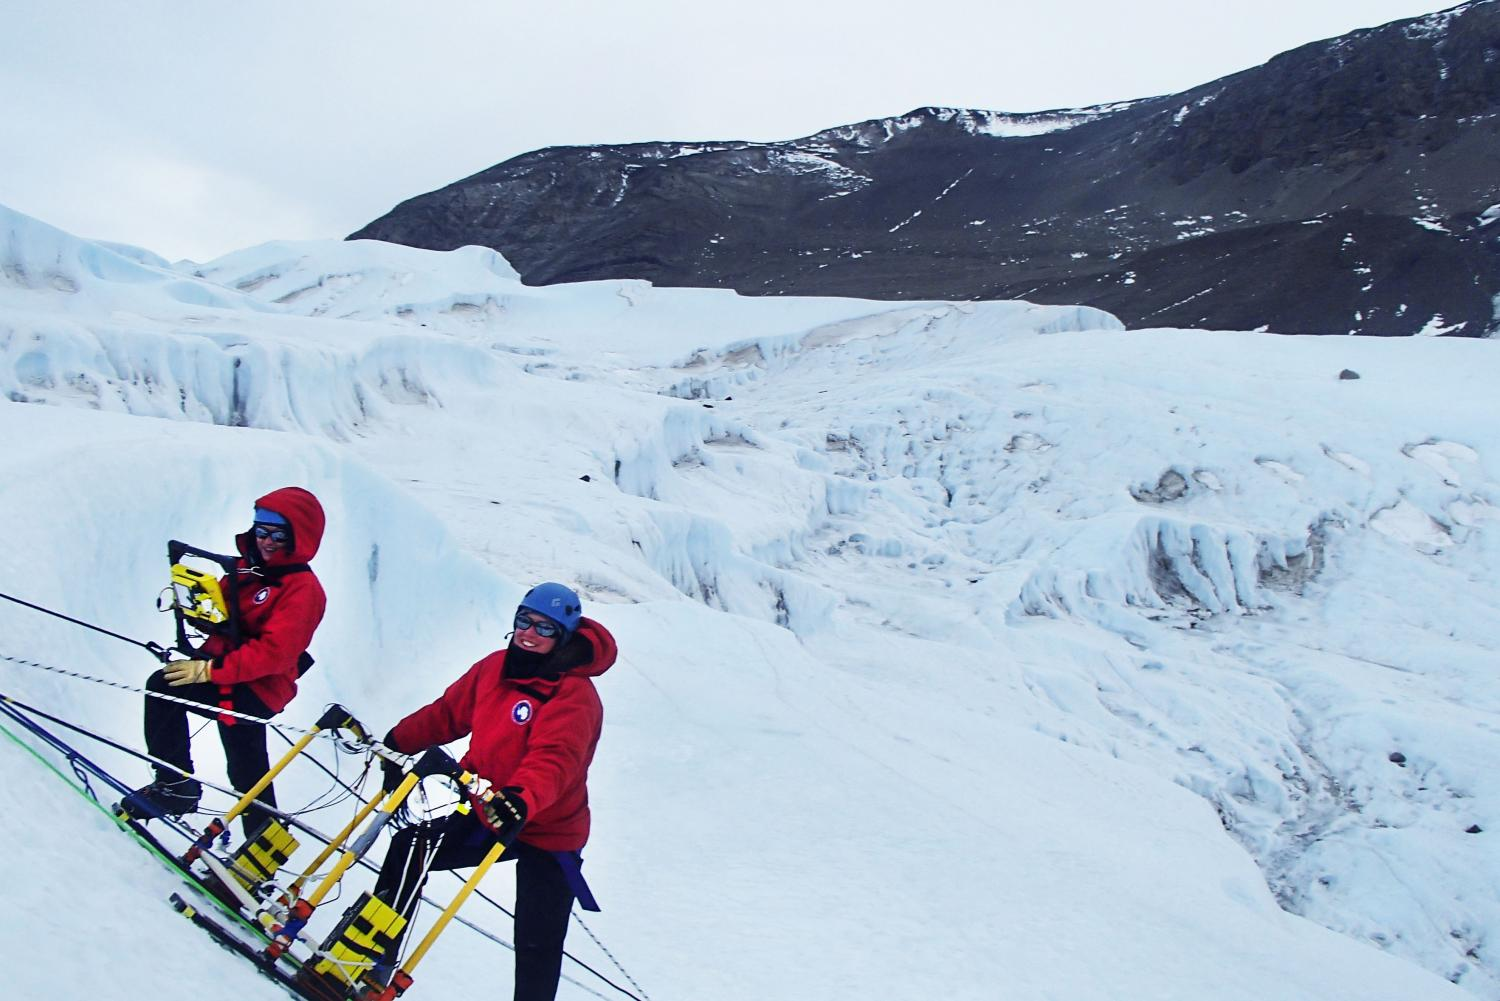 Mystery behind the Antarctic's 'Blood Falls' solved after more than 100 years